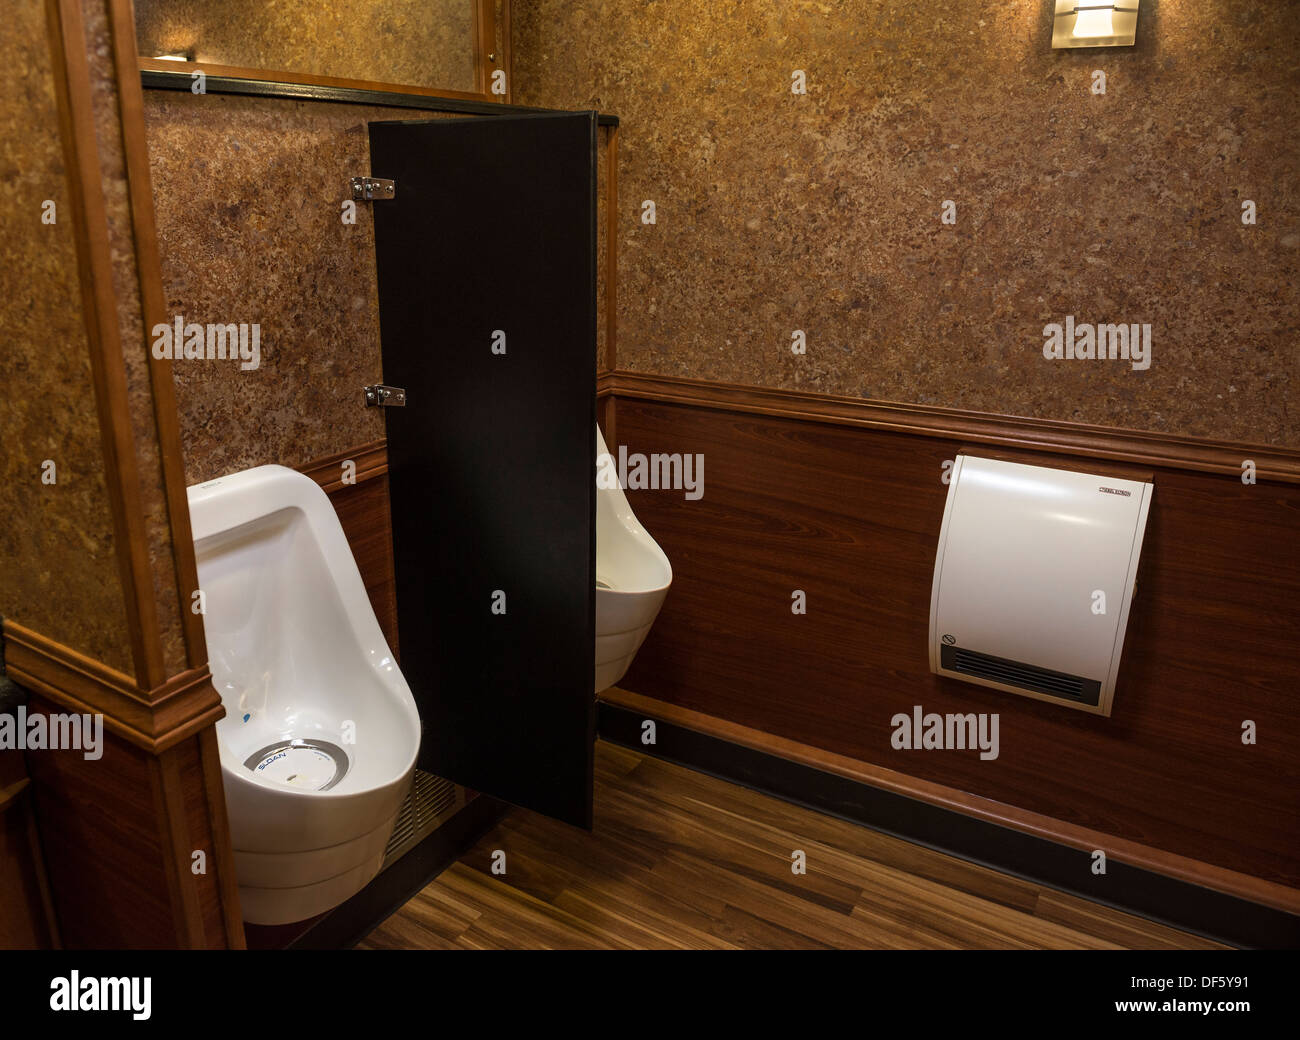 Luxury portable toilets or more commonly known as porta potties and porta loos. Stock Photo